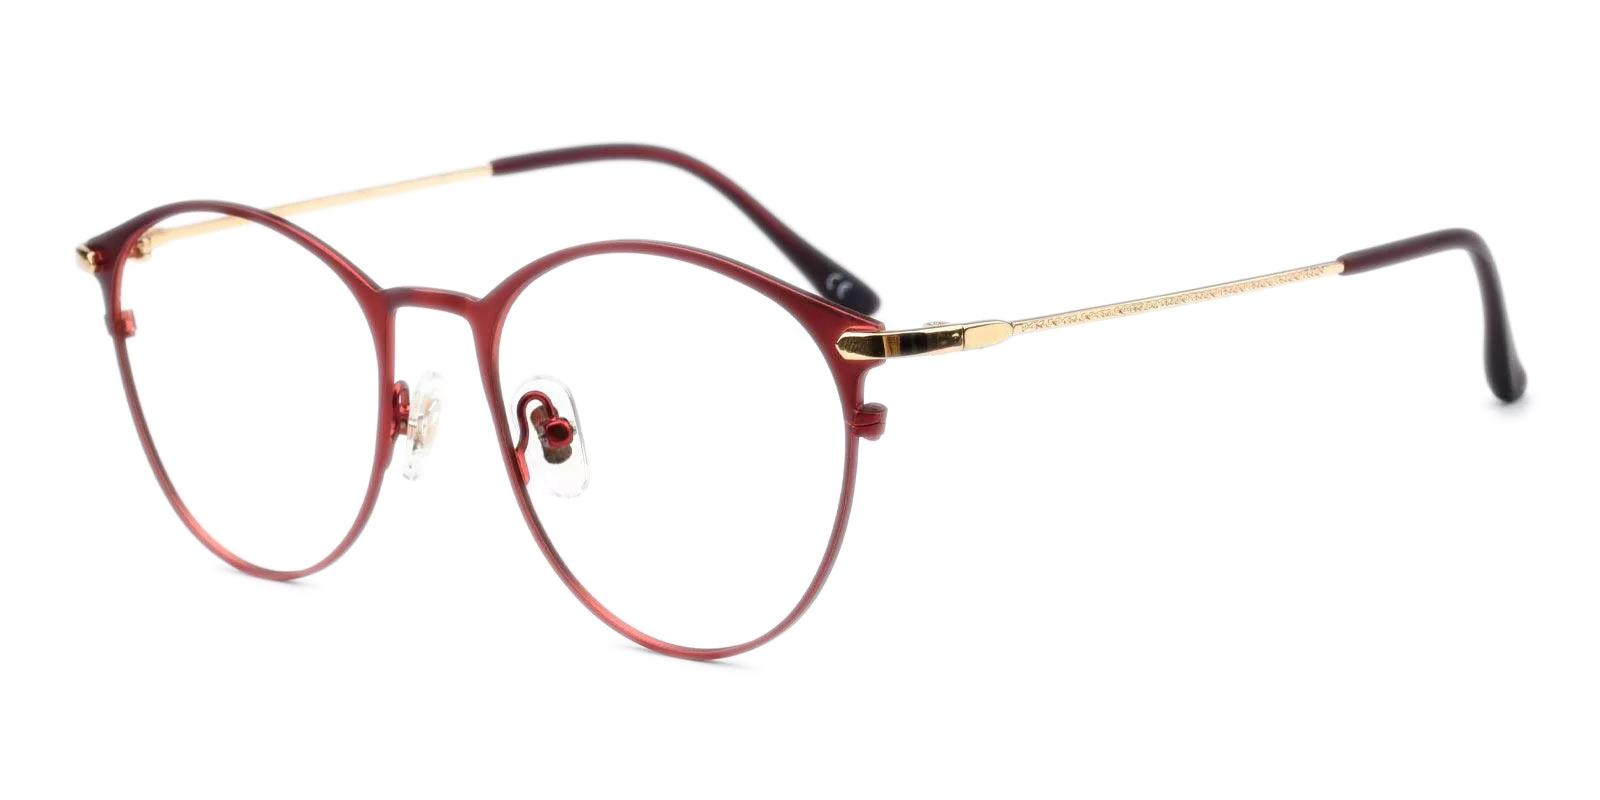 Persisto Red Metal Eyeglasses , Fashion , NosePads Frames from ABBE Glasses